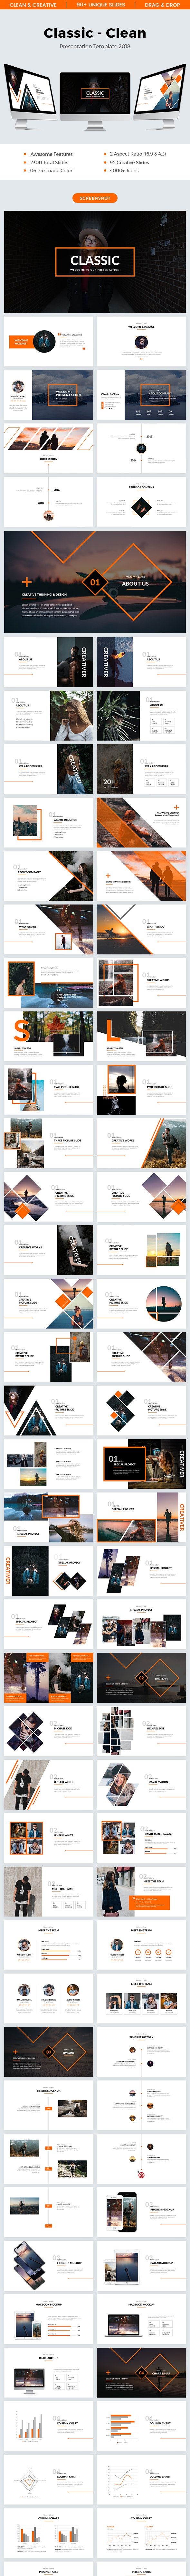 Classic - Clean Powerpoint Template 2018 - Creative PowerPoint Templates